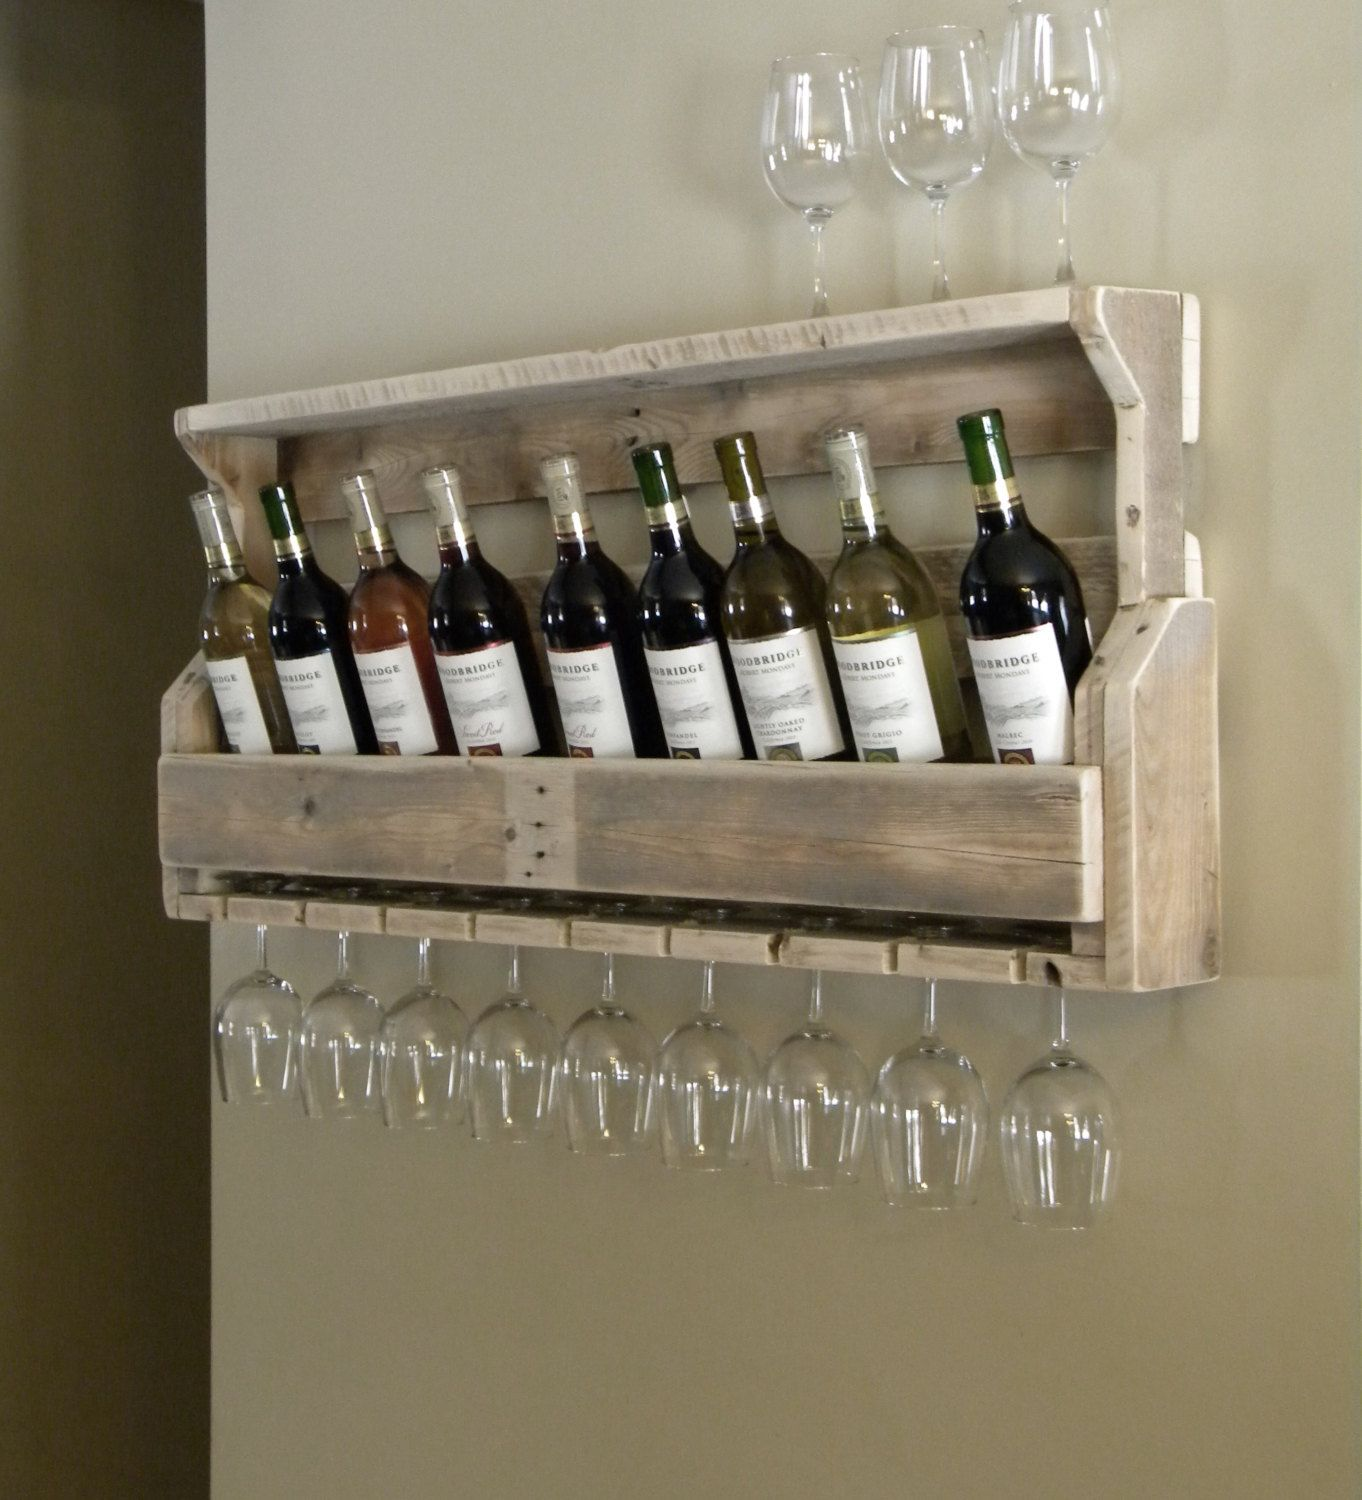 christmas gift rustic wine rack reclaimed wood rustic decor country home decor pallet wine rack gifts for dad wooden shelf wine